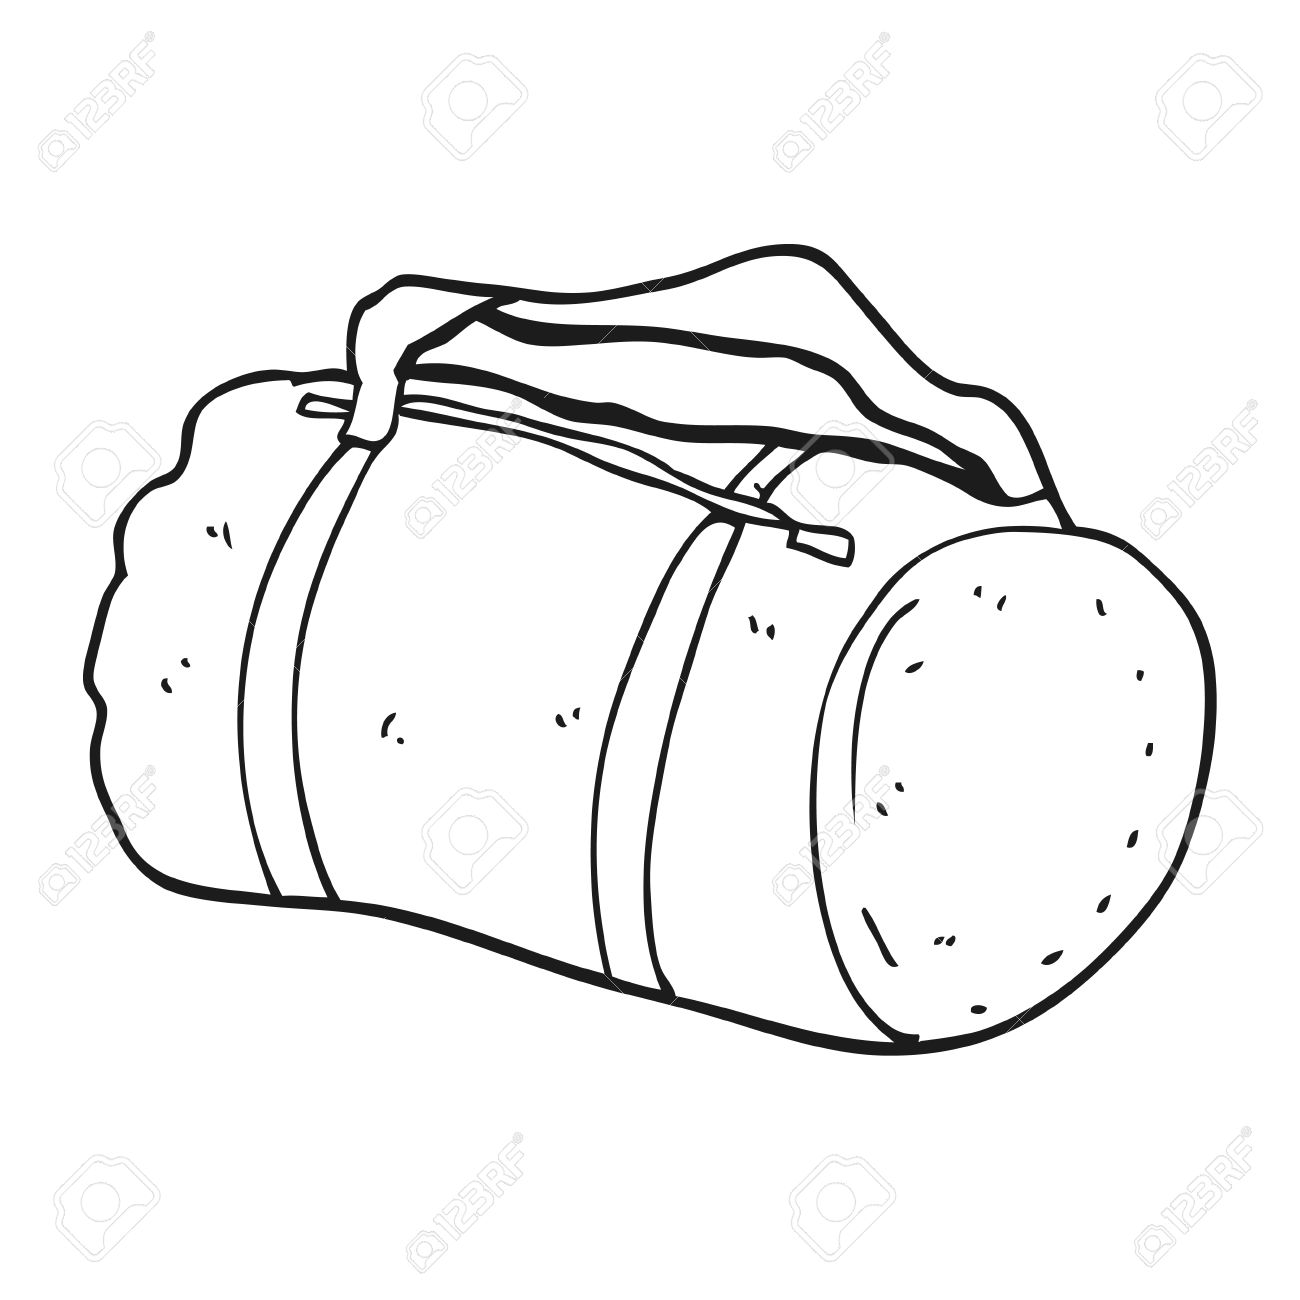 1300x1300 Freehand Drawn Black And White Cartoon Sports Bag Royalty Free